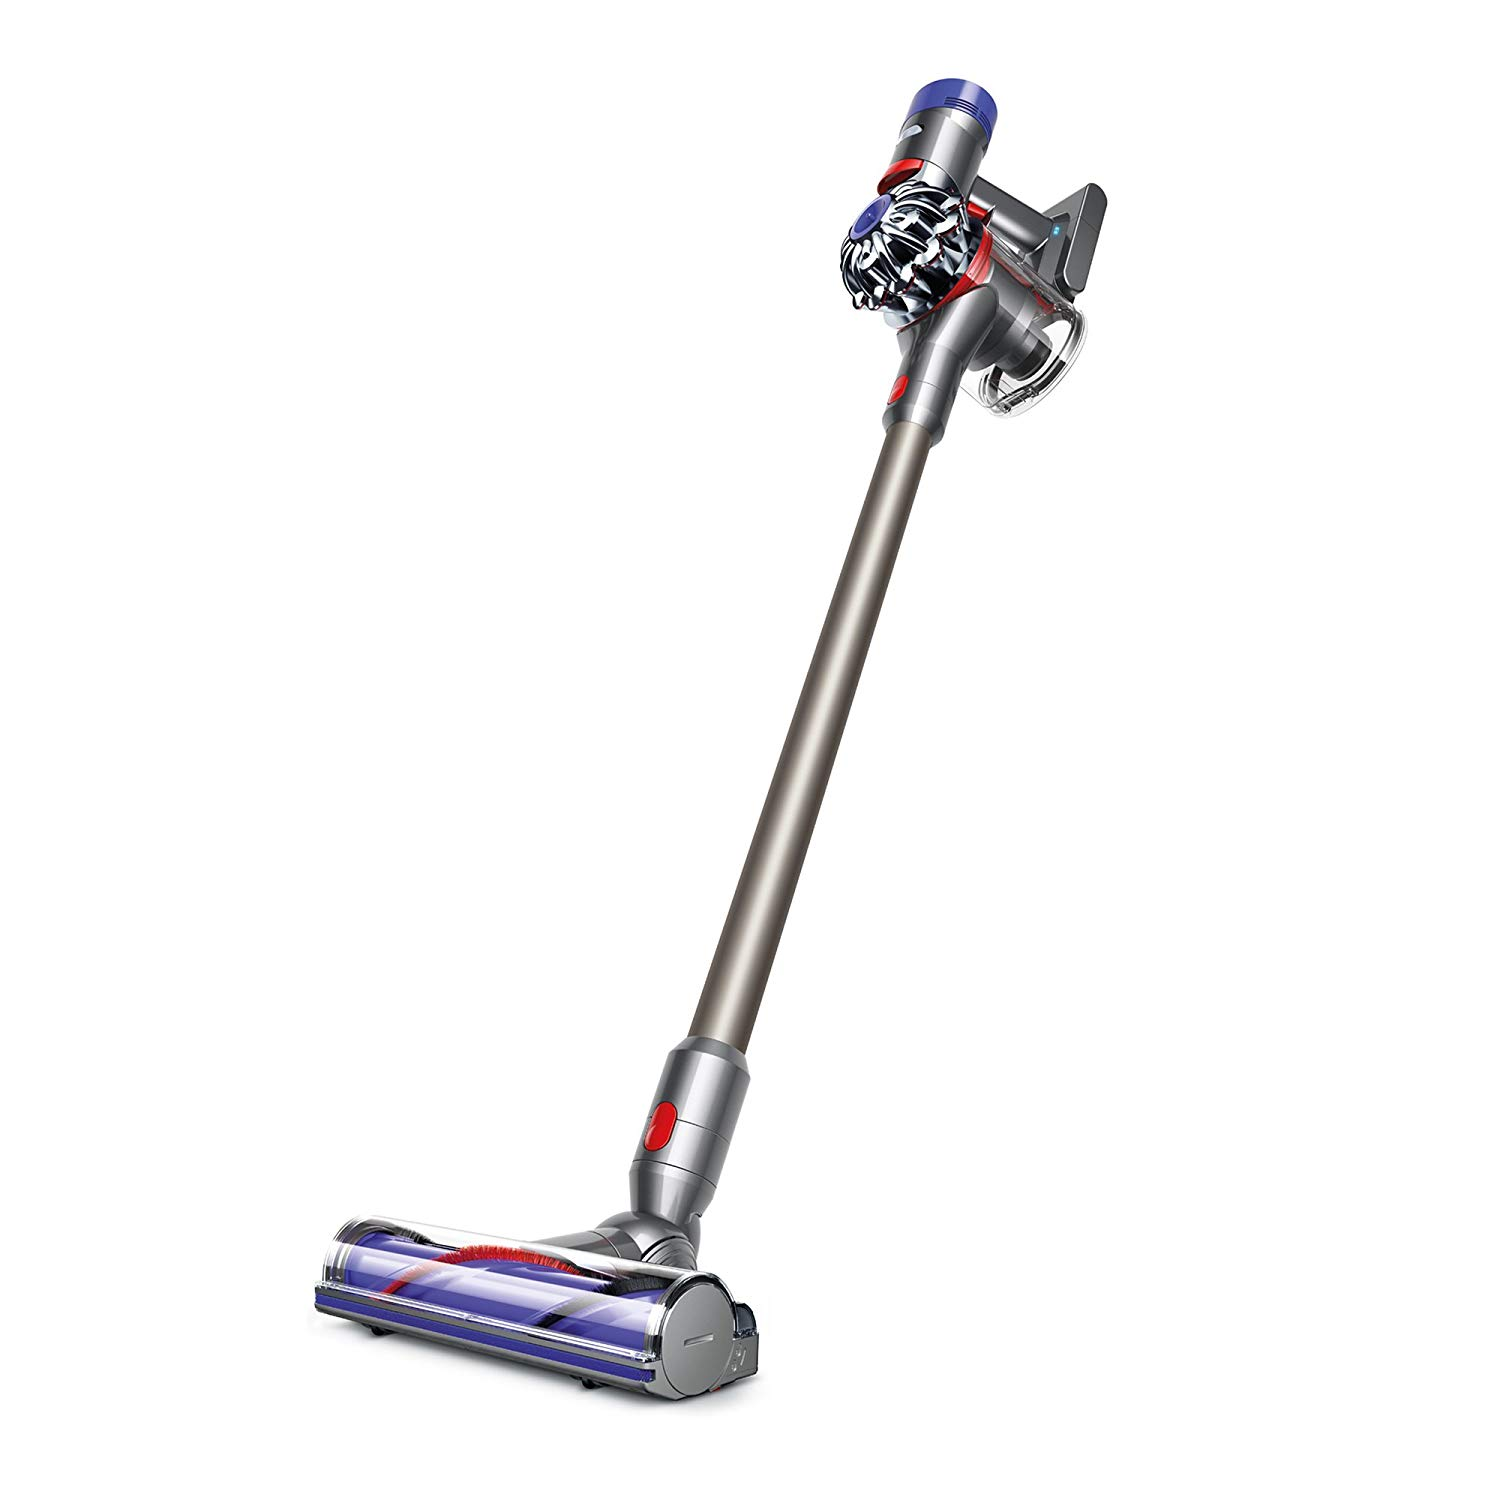 Review of - Dyson V8 Animal Cordless Stick Vacuum Cleaner, Iron